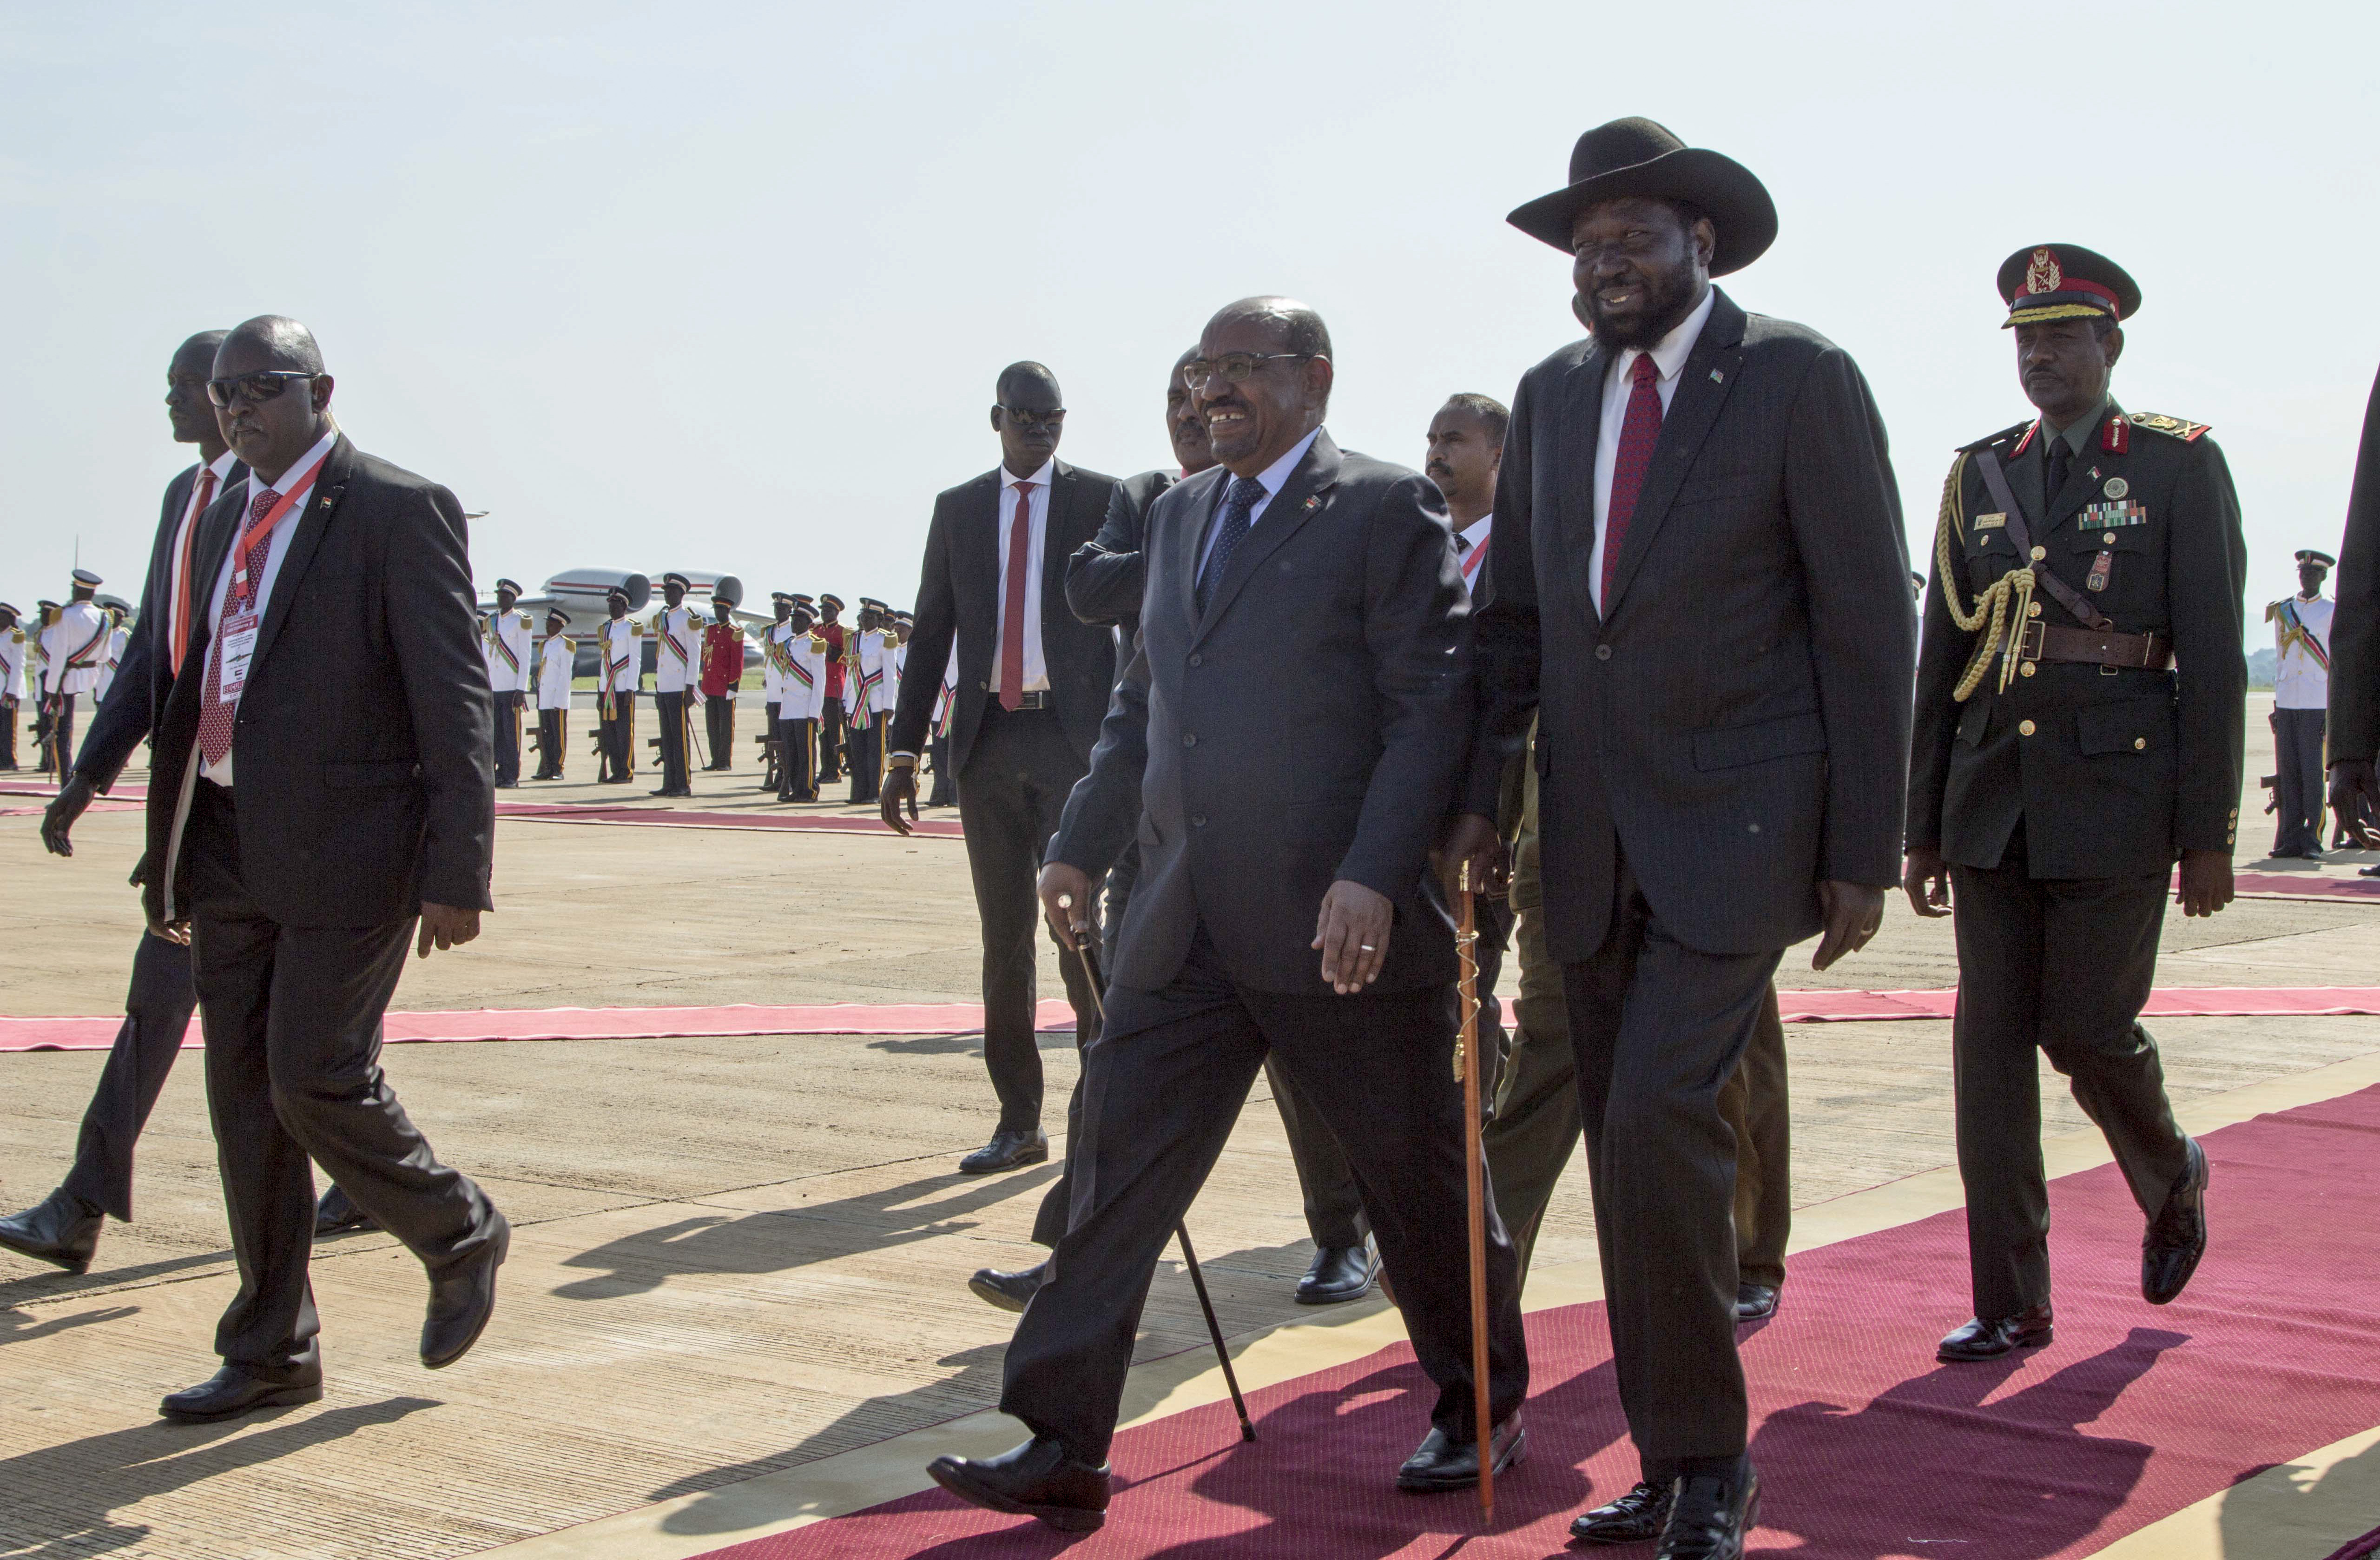 Sudan's President Omar al-Bashir, center, walks with South Sudan's President Salva Kiir, center right, as he arrives at the airport in Juba, South Sudan Wednesday, Oct. 31, 2018. For the first time since fleeing the war-torn country more than two years ago, South Sudan's opposition leader Riek Machar returned on Wednesday to take part in a nationwide peace celebration. (AP Photo/Bullen Chol)